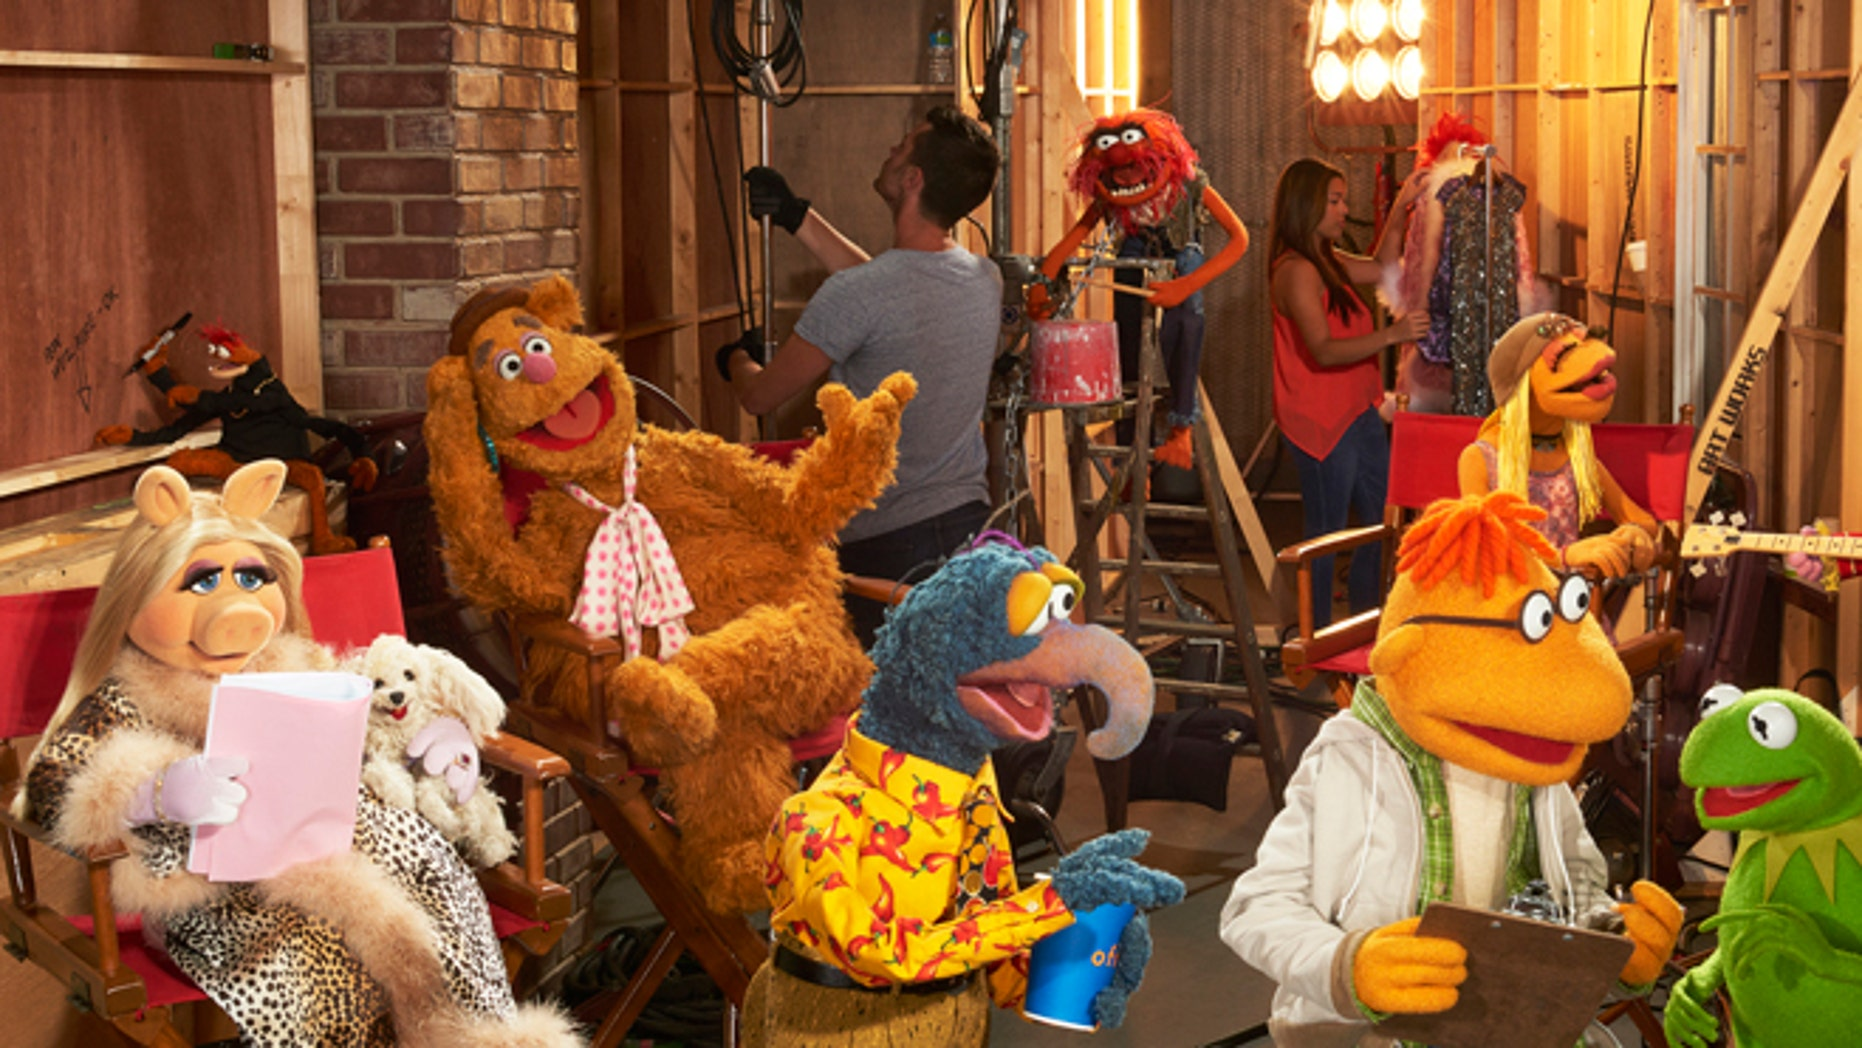 """Sept. 22, 2015: In this image released by ABC, muppet characters, from left, Miss Piggy, Pepe The King Prawn, Fozzie Bear, Gonzo, Animal, background center, Scooter, Janice, Kermit the Frog and Floyd Pepper appear in a scene from """"The Muppets."""""""